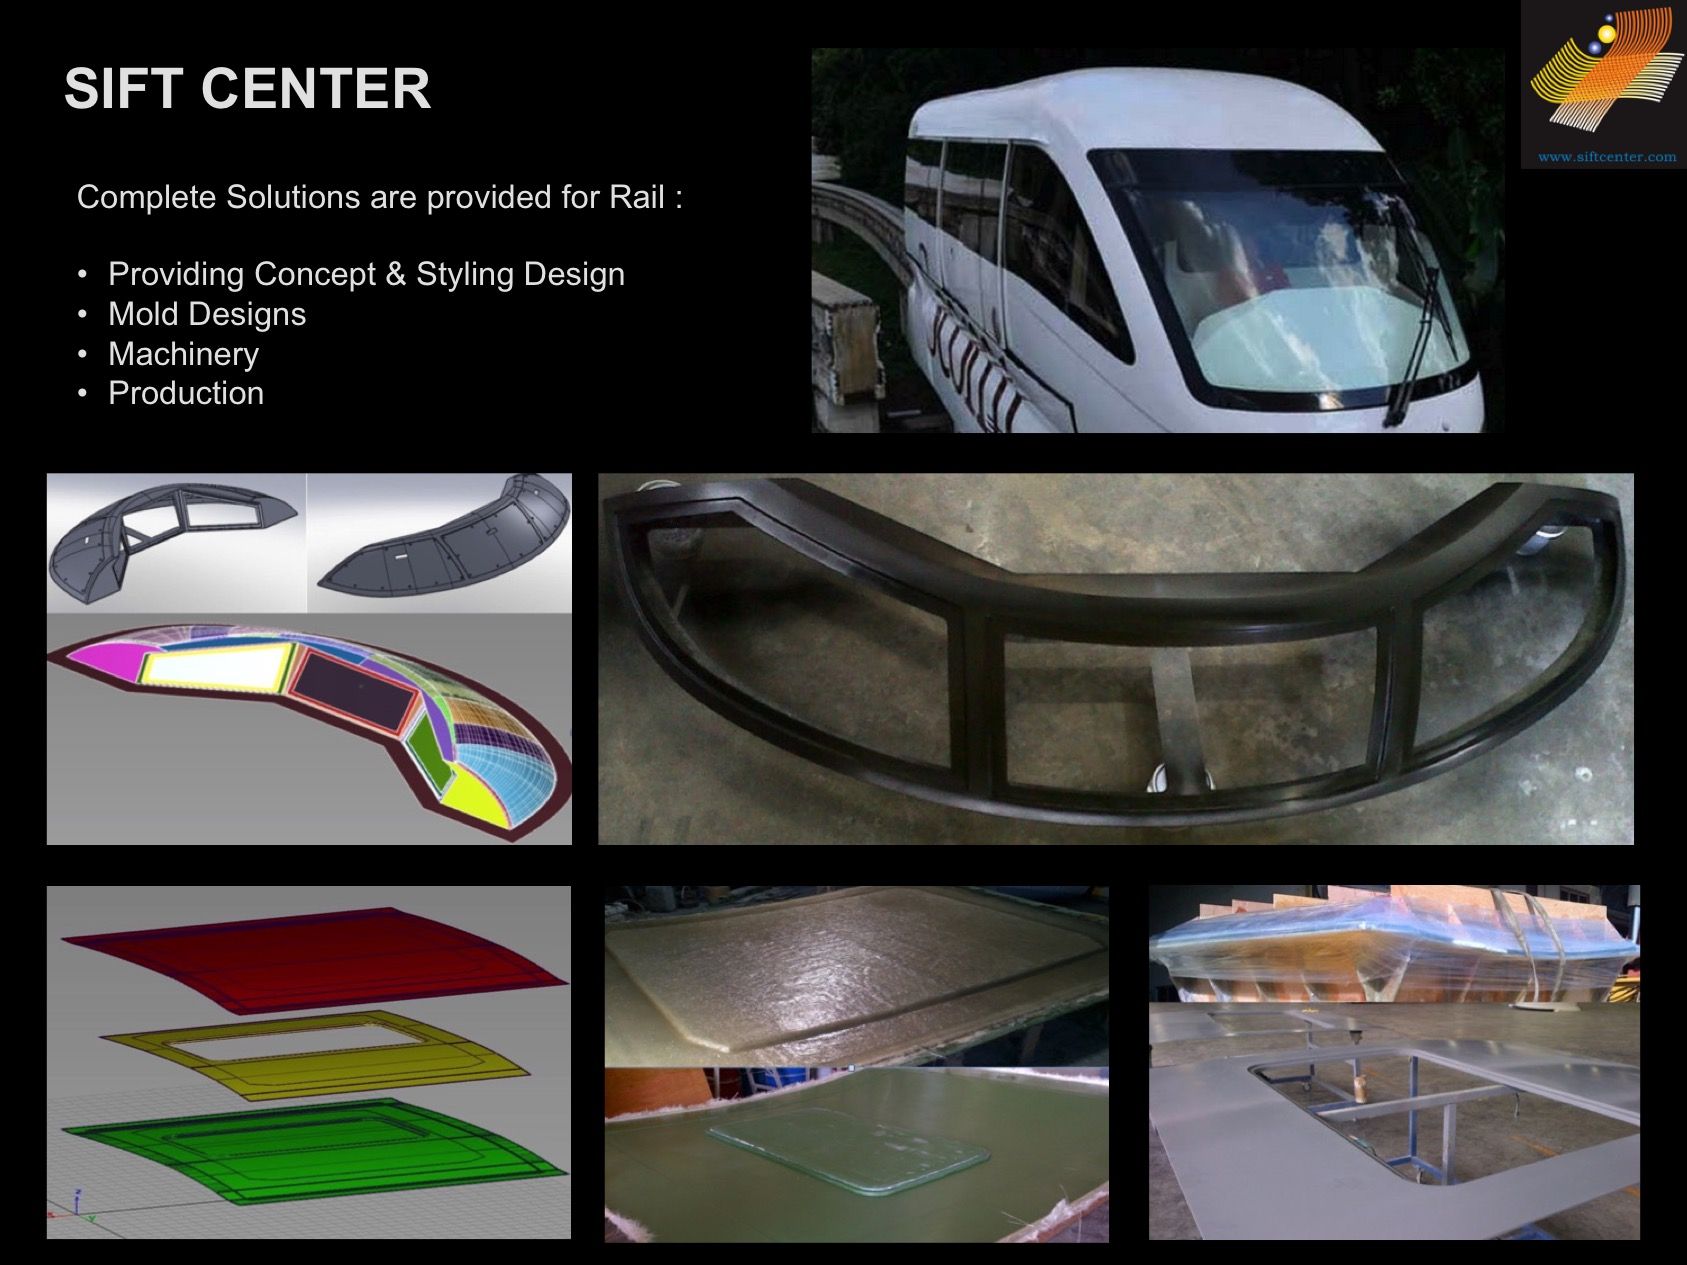 Sift Center : Rail Division